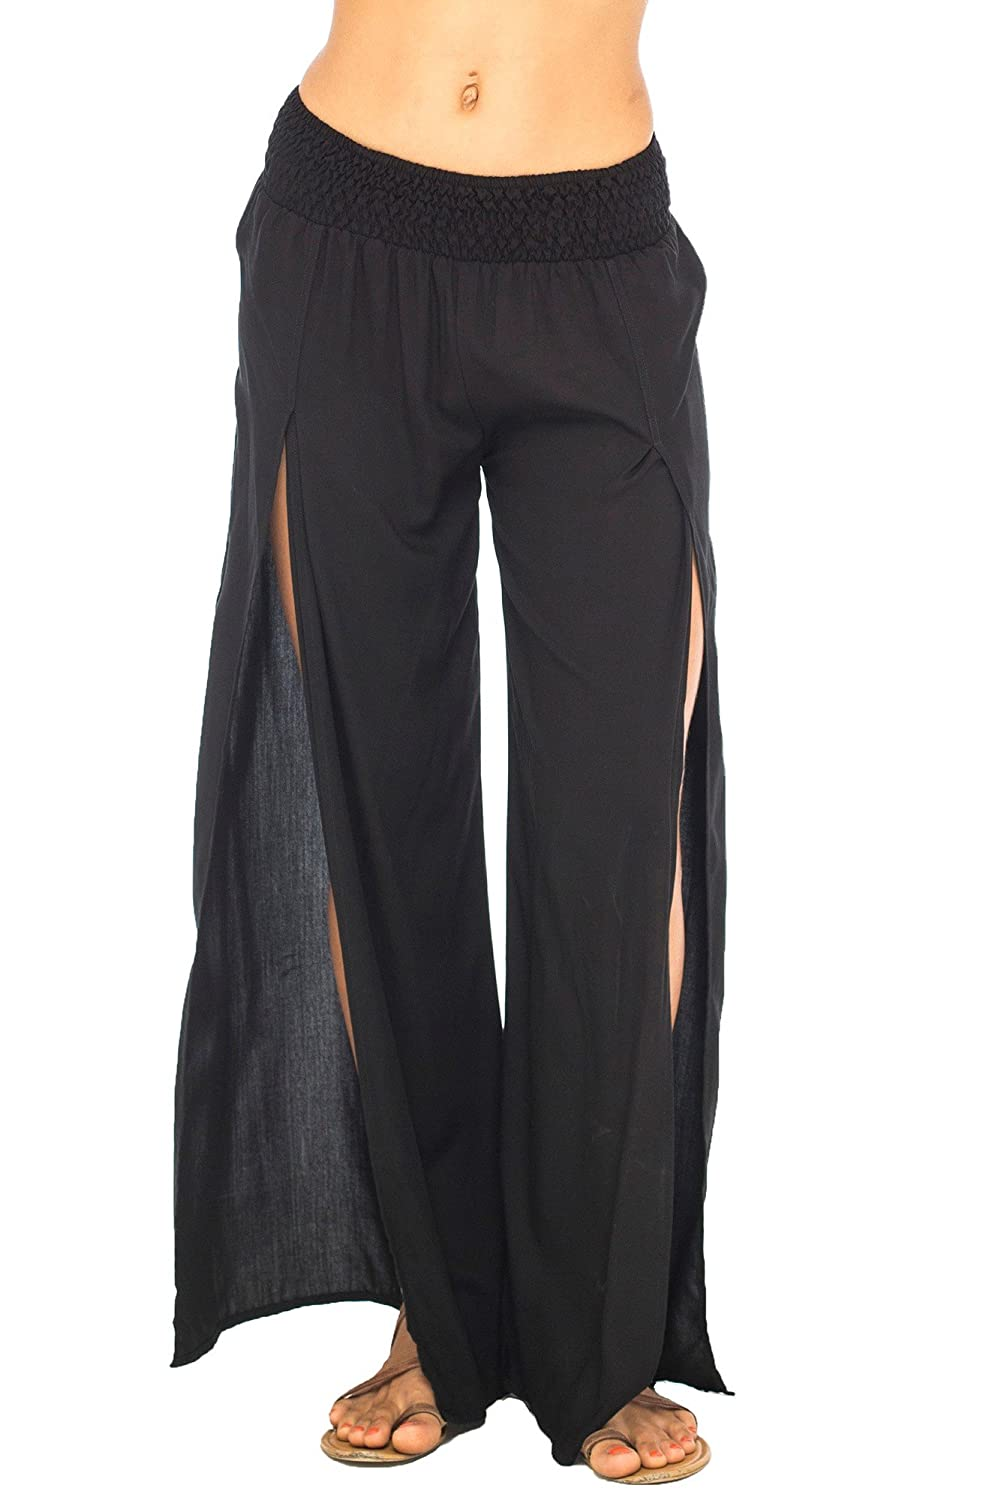 6ec2b19d7b Back From Bali Womens Palazzo Pants Wide Leg Loose Beach Pants with Slit  Boho Swimsuit Cover Up at Amazon Women's Clothing store: